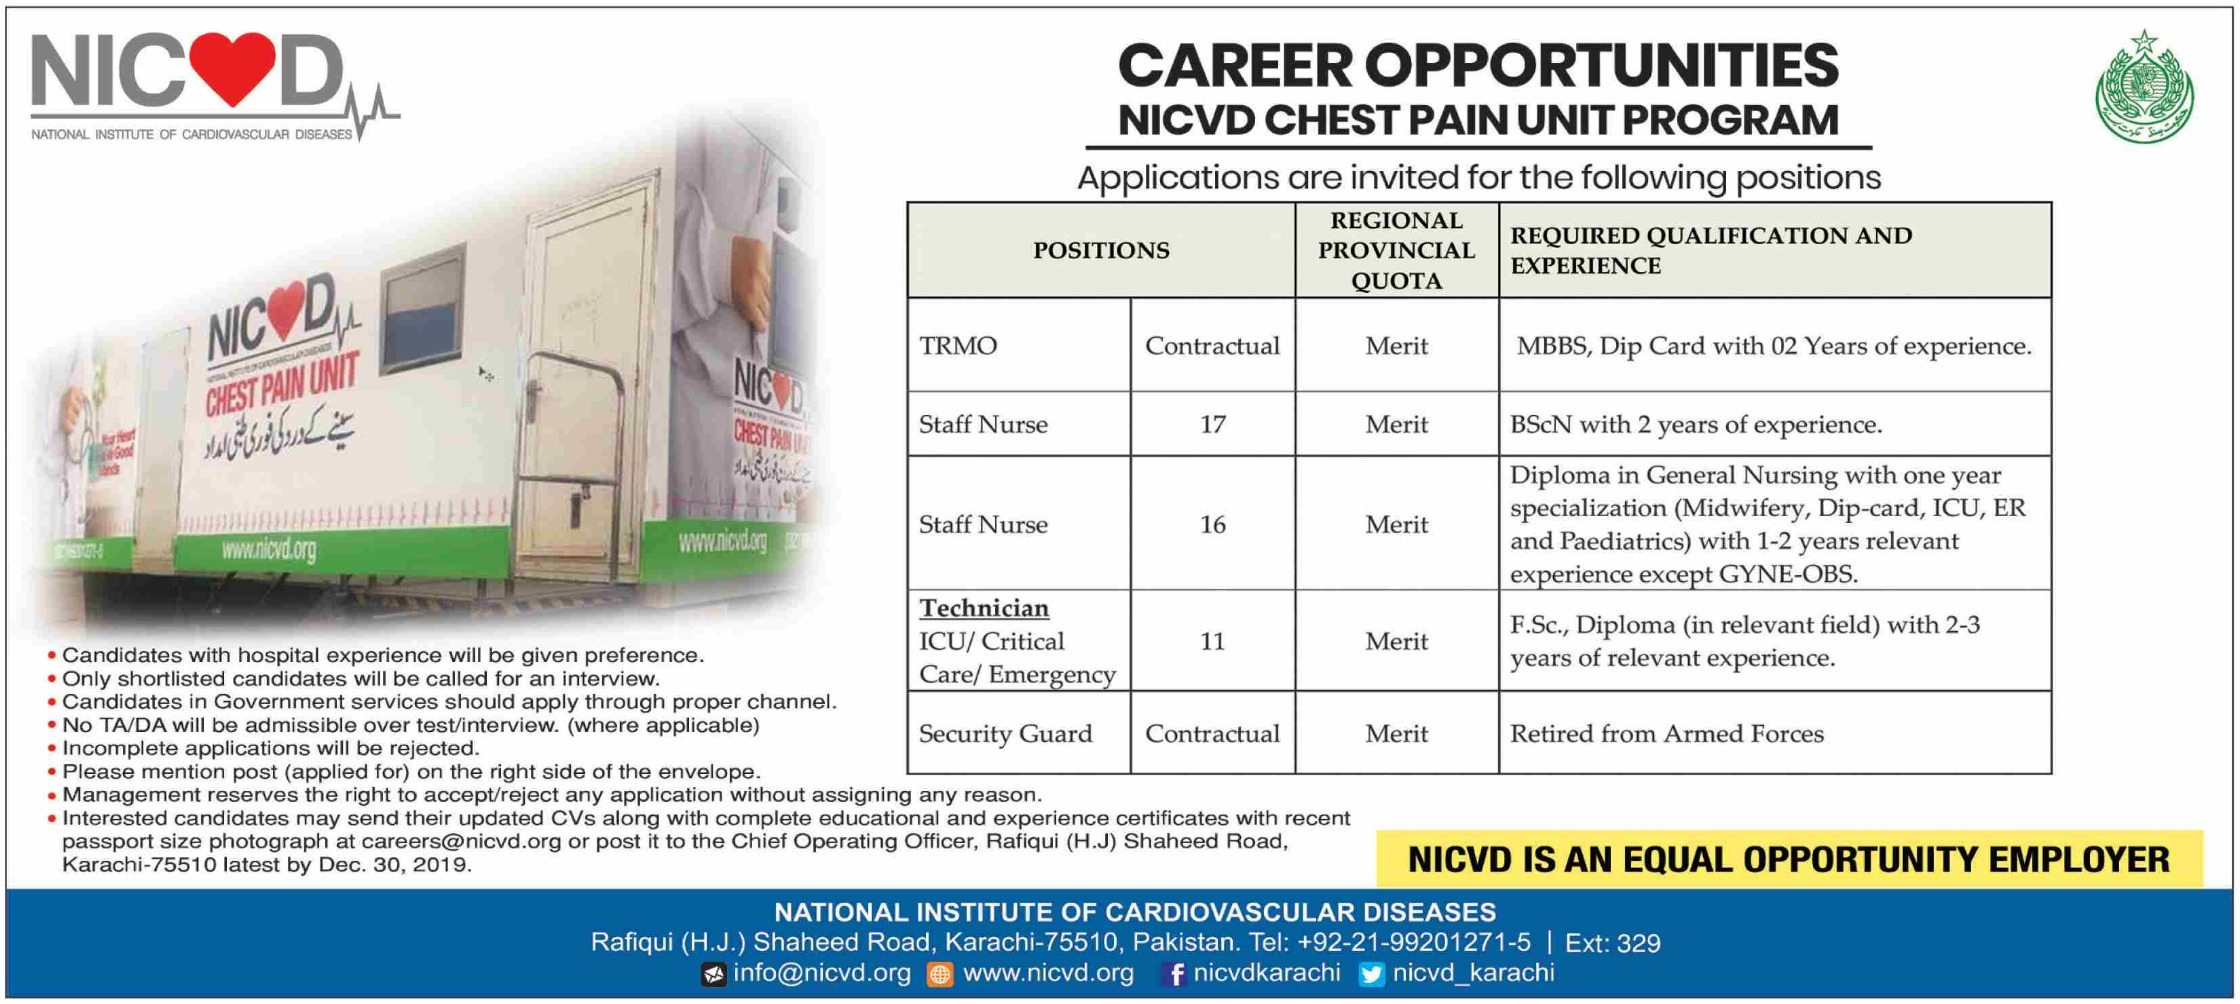 NICVD Chest Pain Unit Program Jobs 2019 Karachi